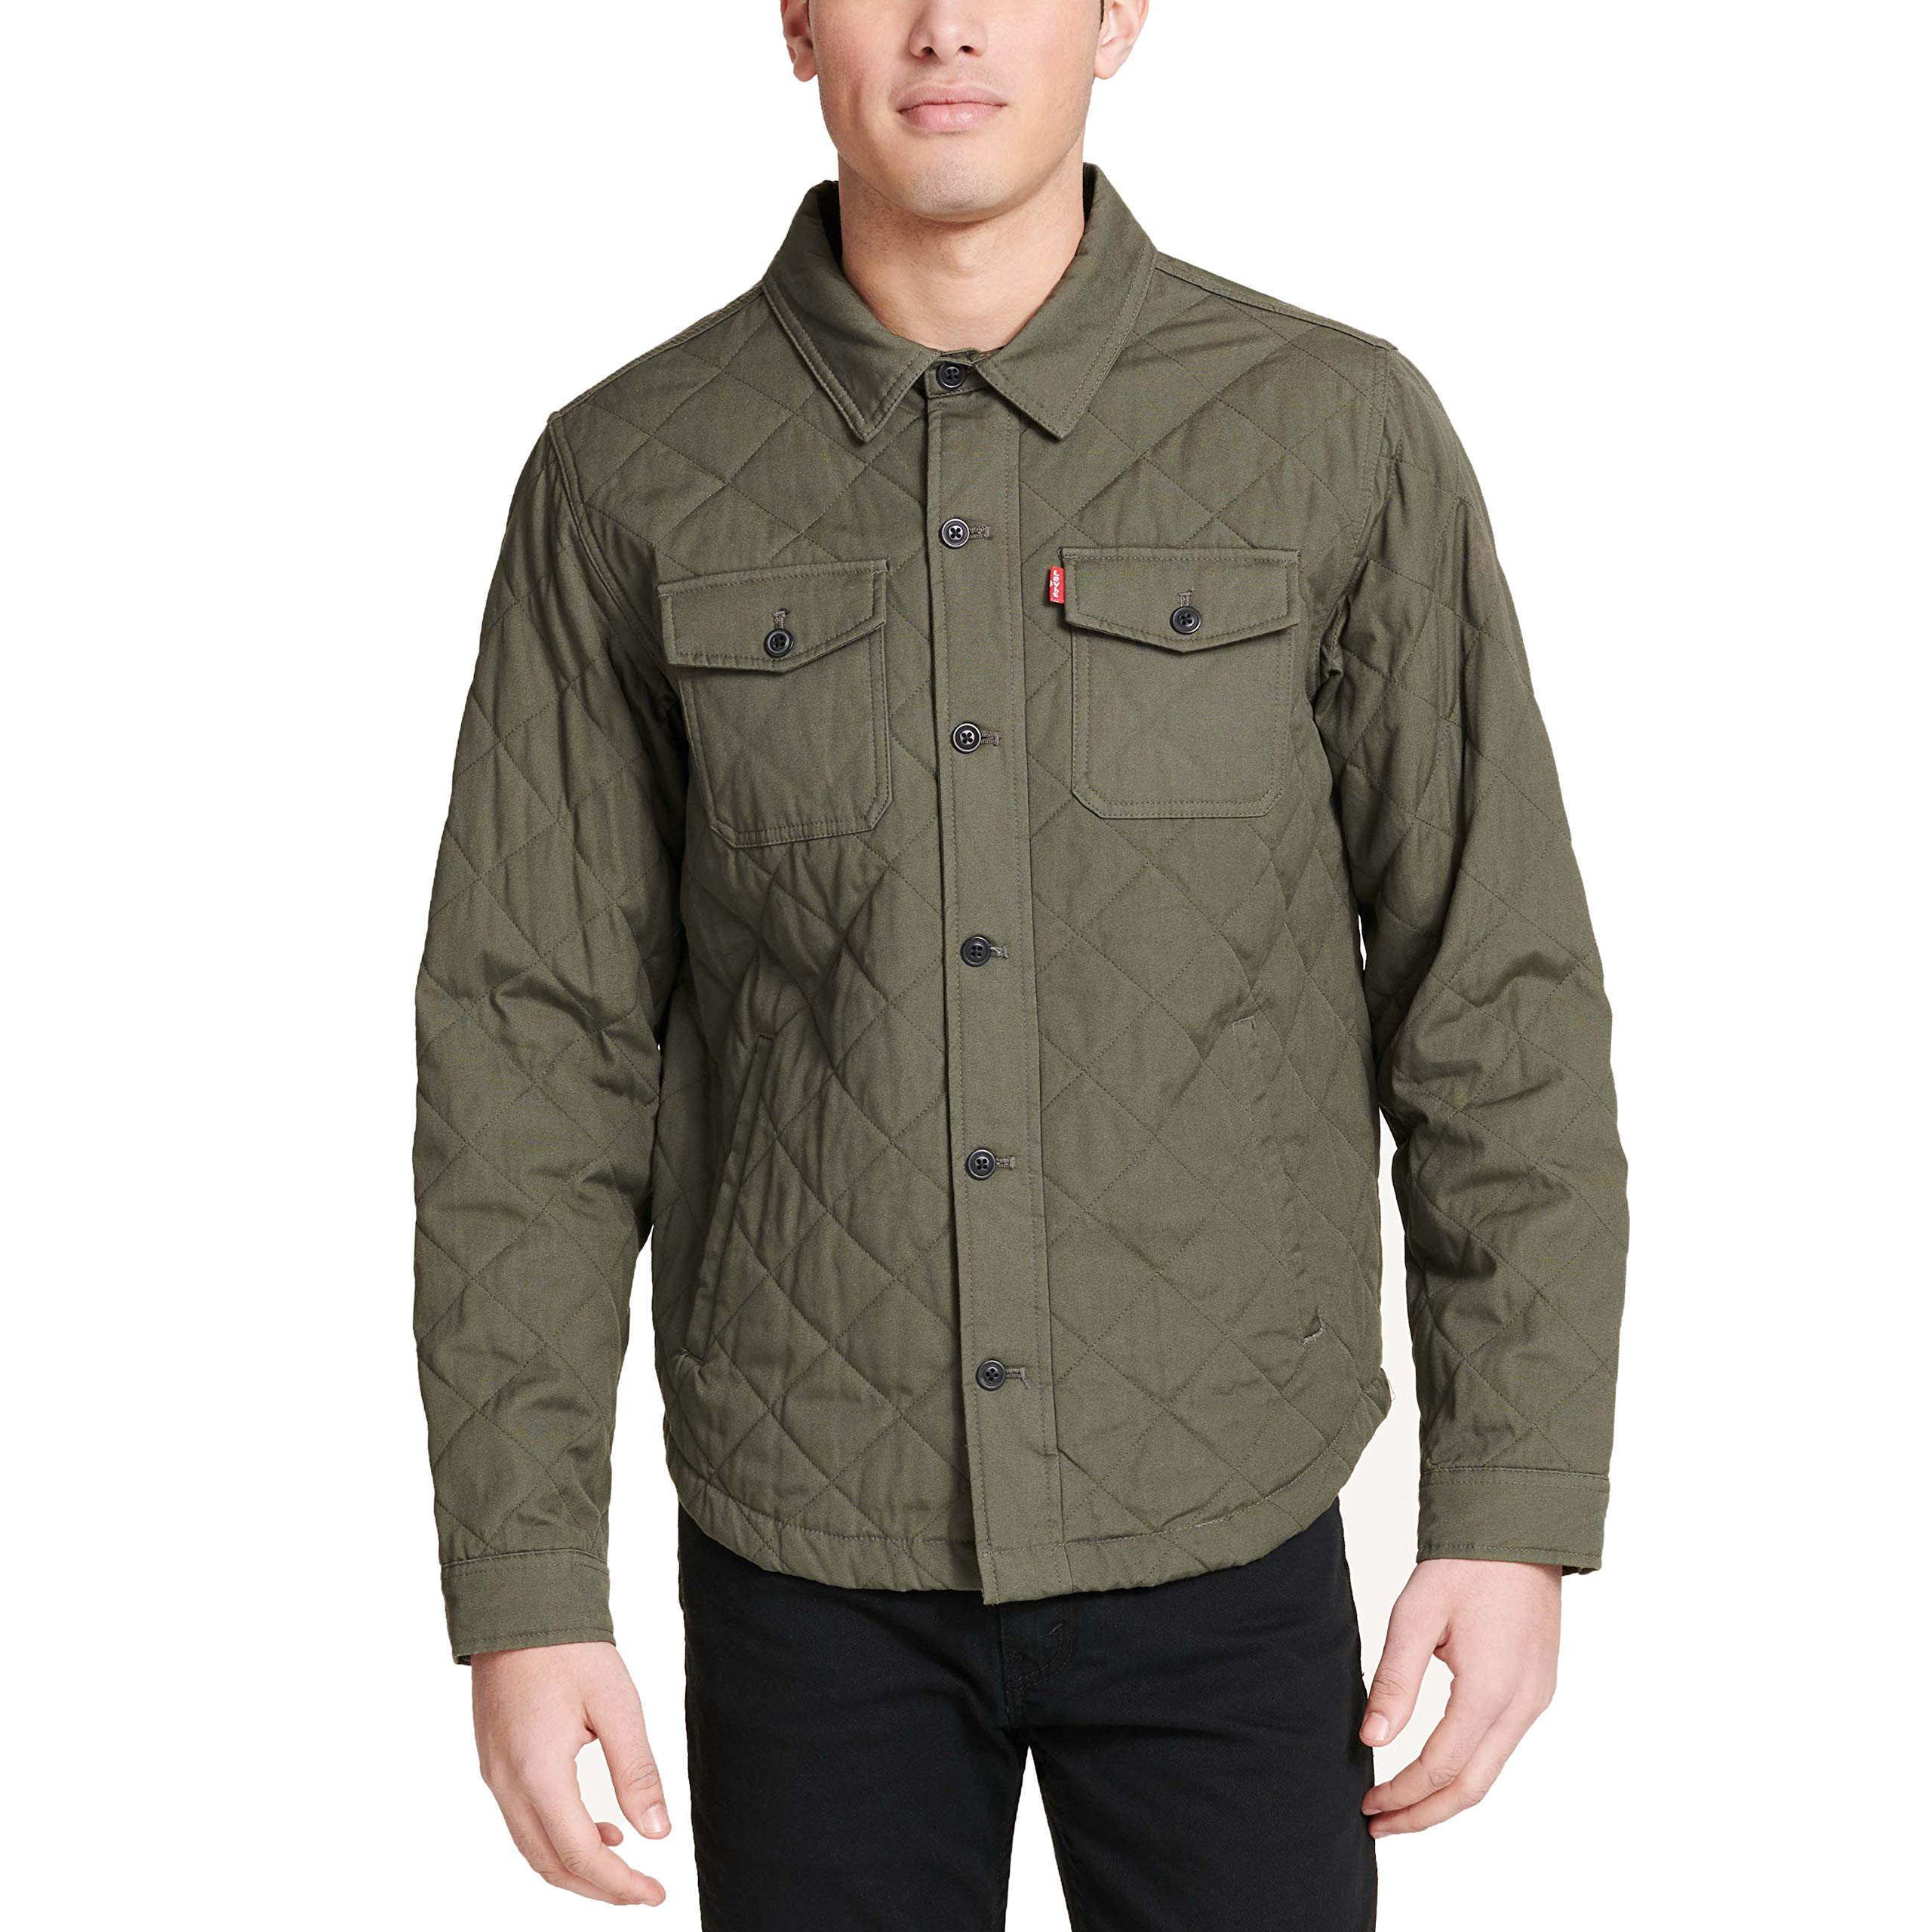 Levi's Men's Cotton Diamond Quilted Shirt Jacket, Army Green, Large by Levi's